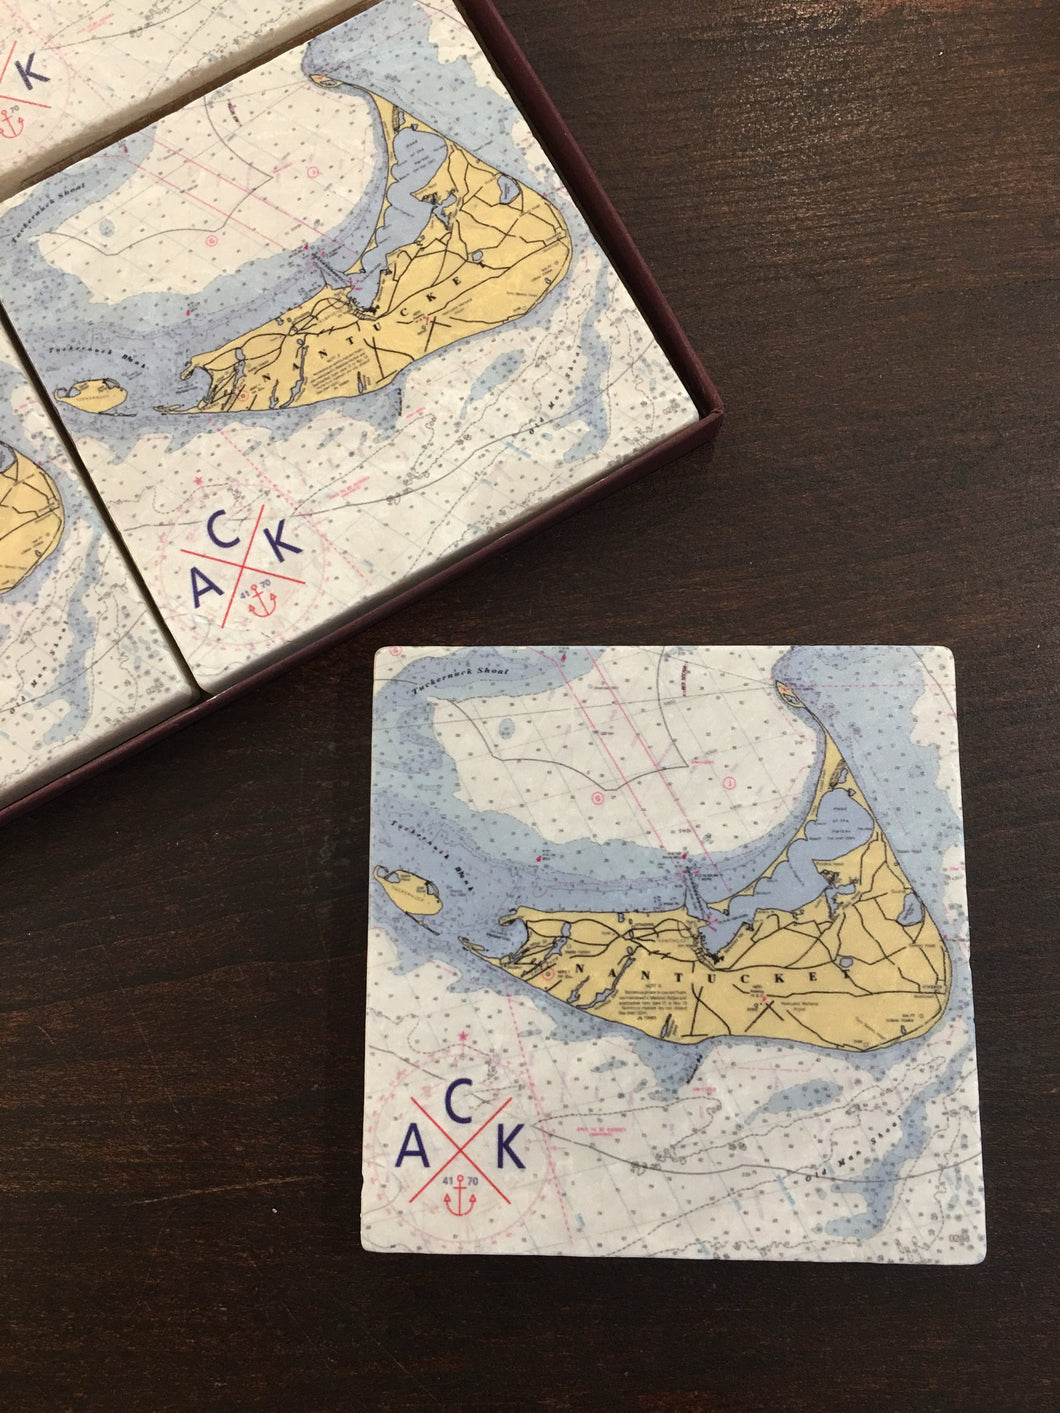 ACK 4170™ Nantucket Island Chart Marble Coaster Set